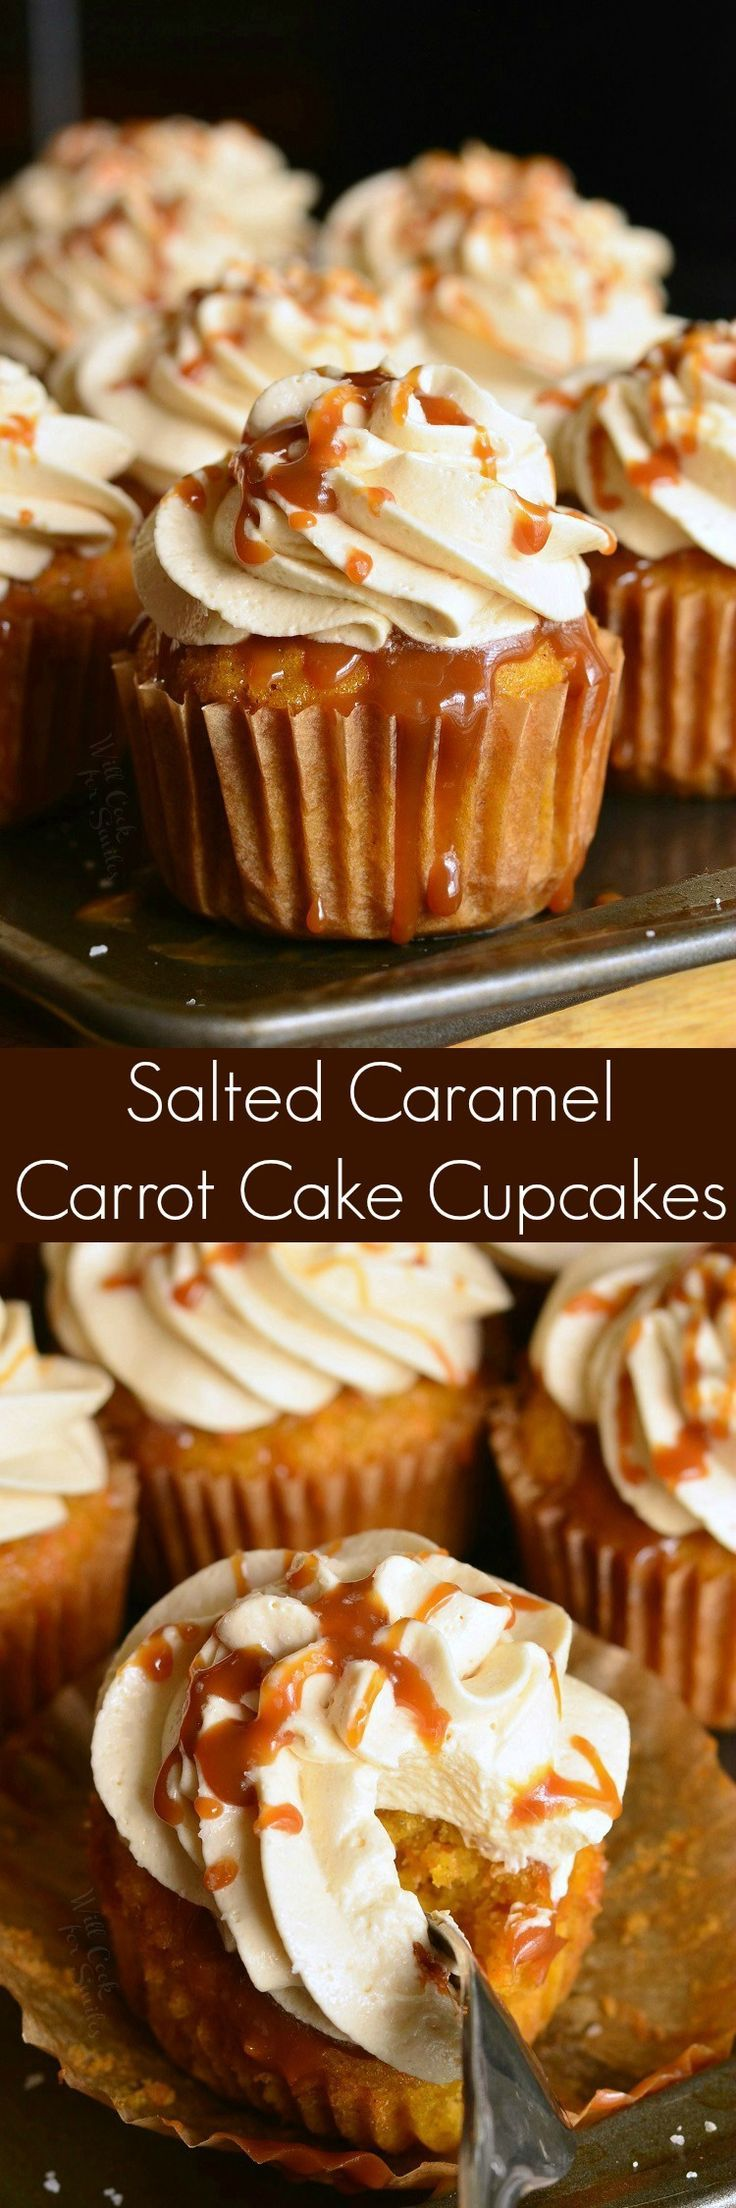 Salted Caramel Carrot Cake Cupcakes. Soft and moist carrot cakes are topped with Caramel Cream Cheese Frosting and topped with caramel drizzle and a sprinkle of salt. (Drip Cake Flavors)